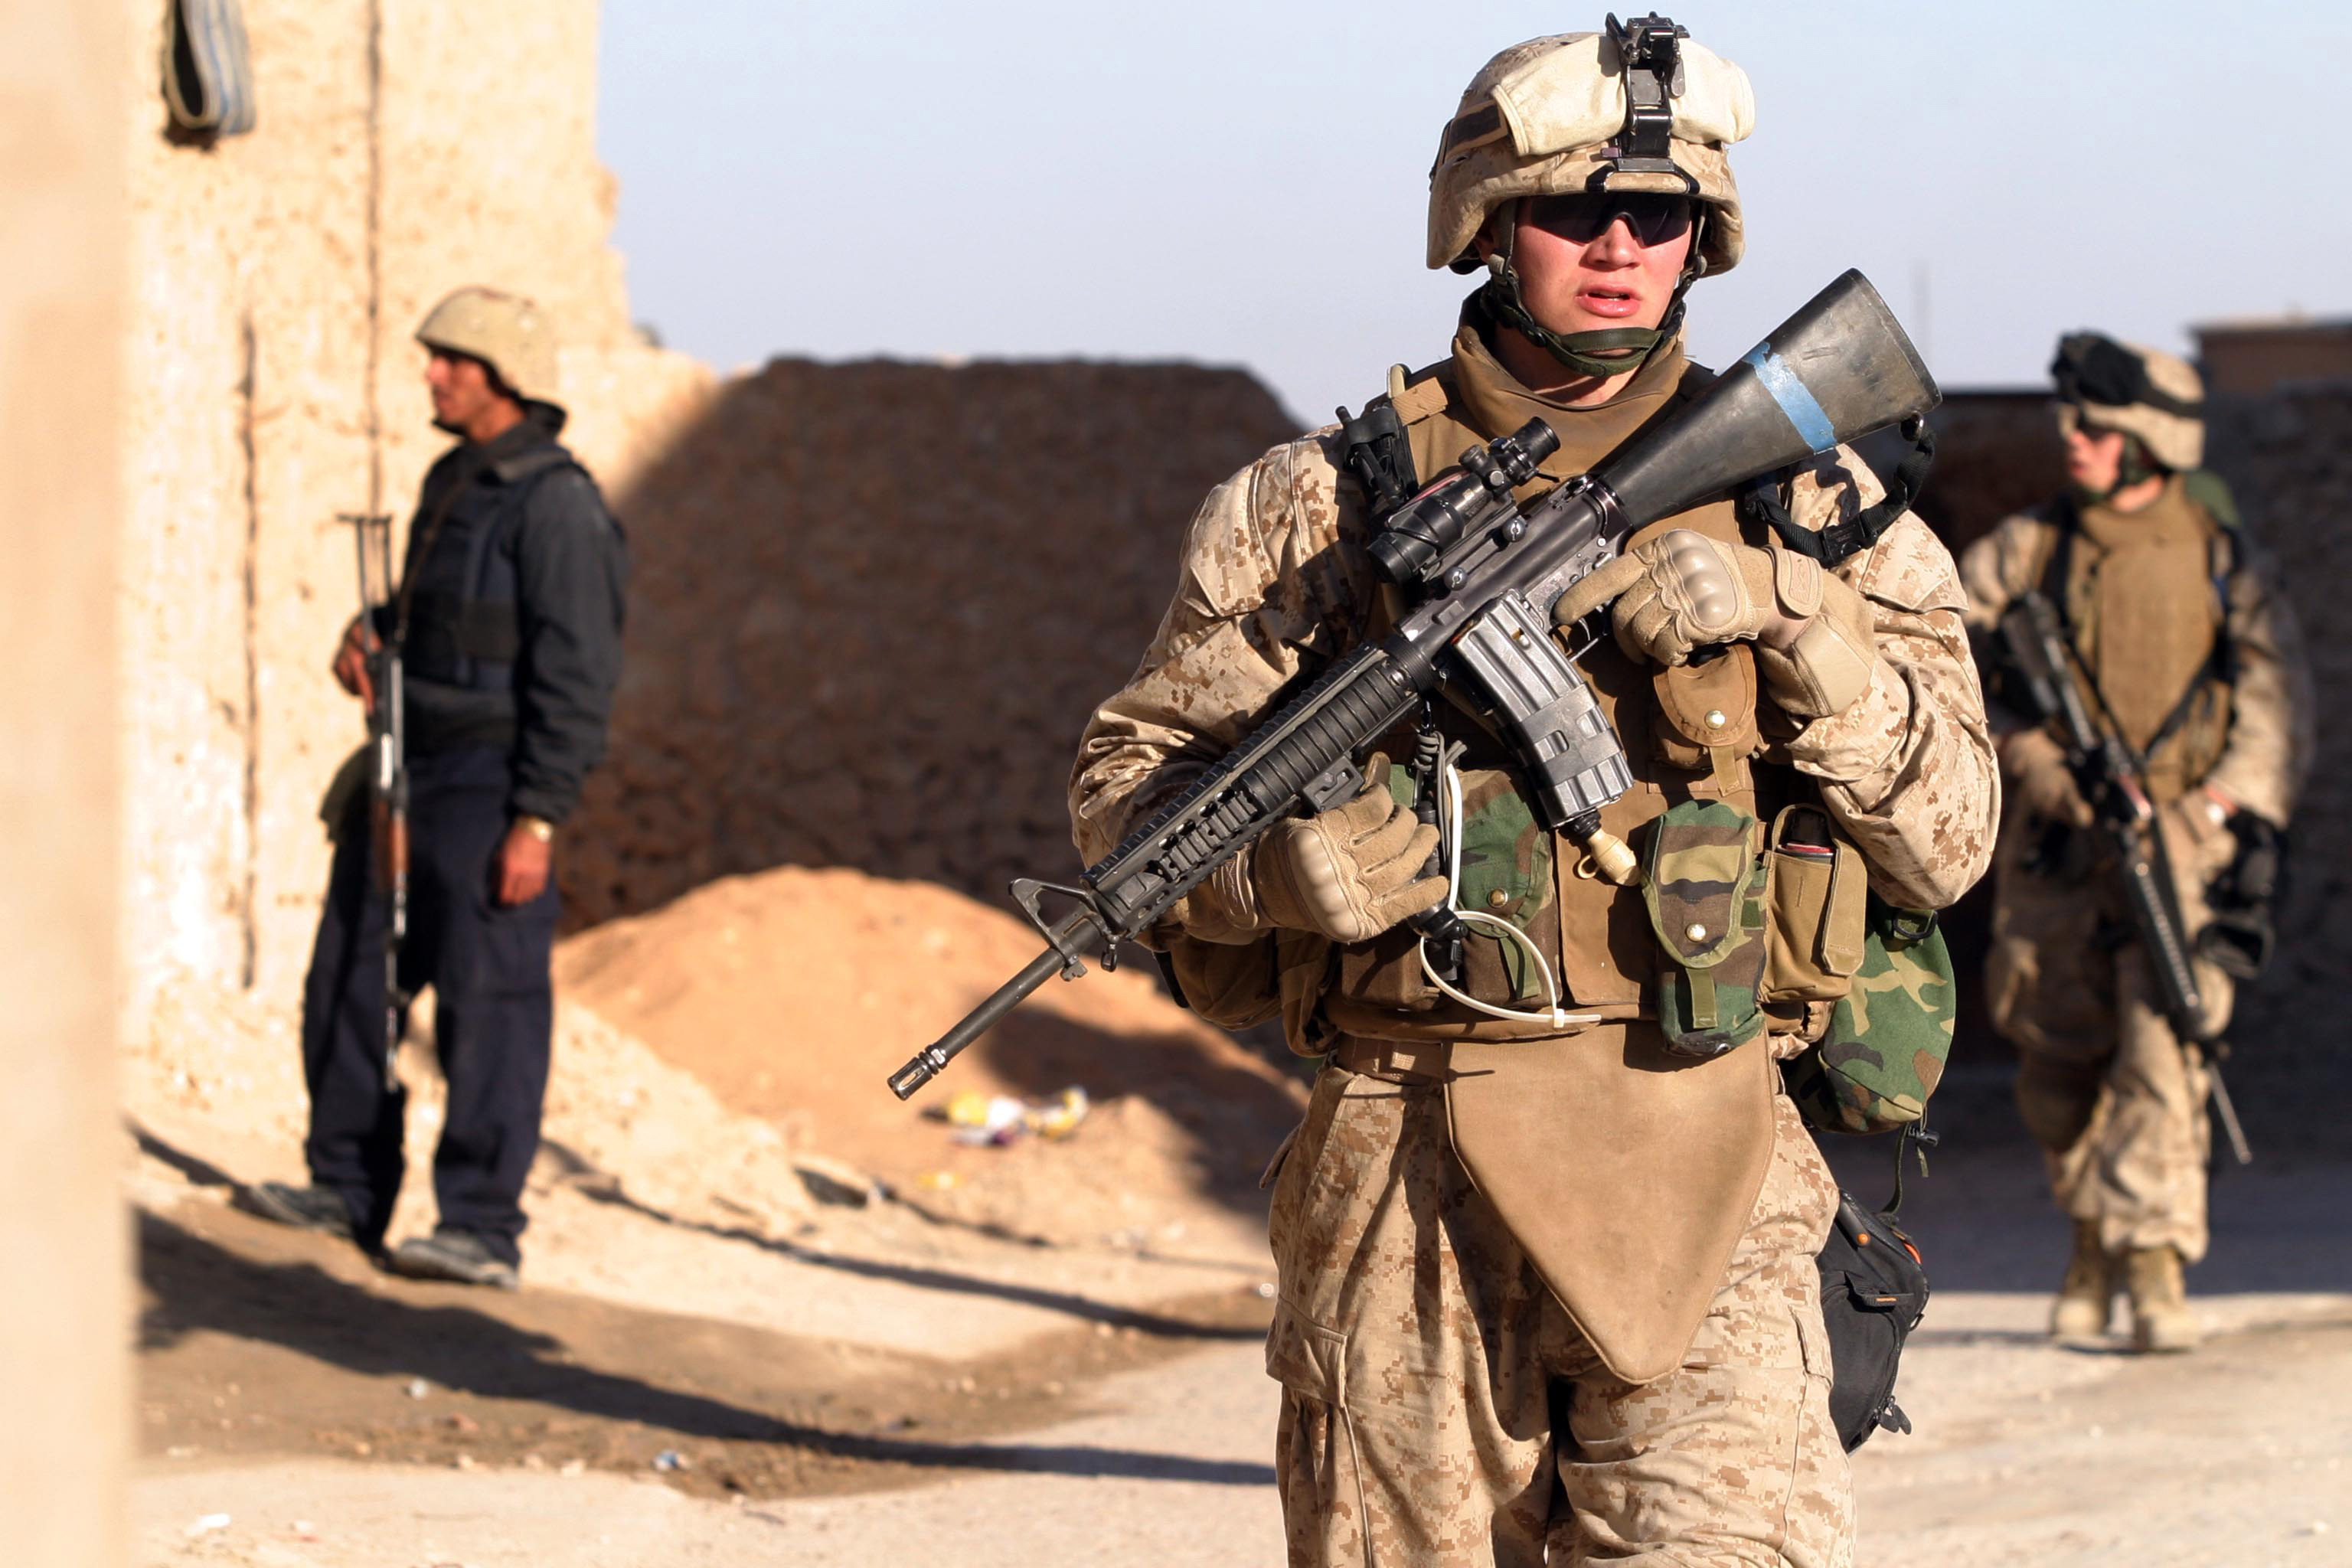 A U.S. military personnel and material on patrol in Iraq.